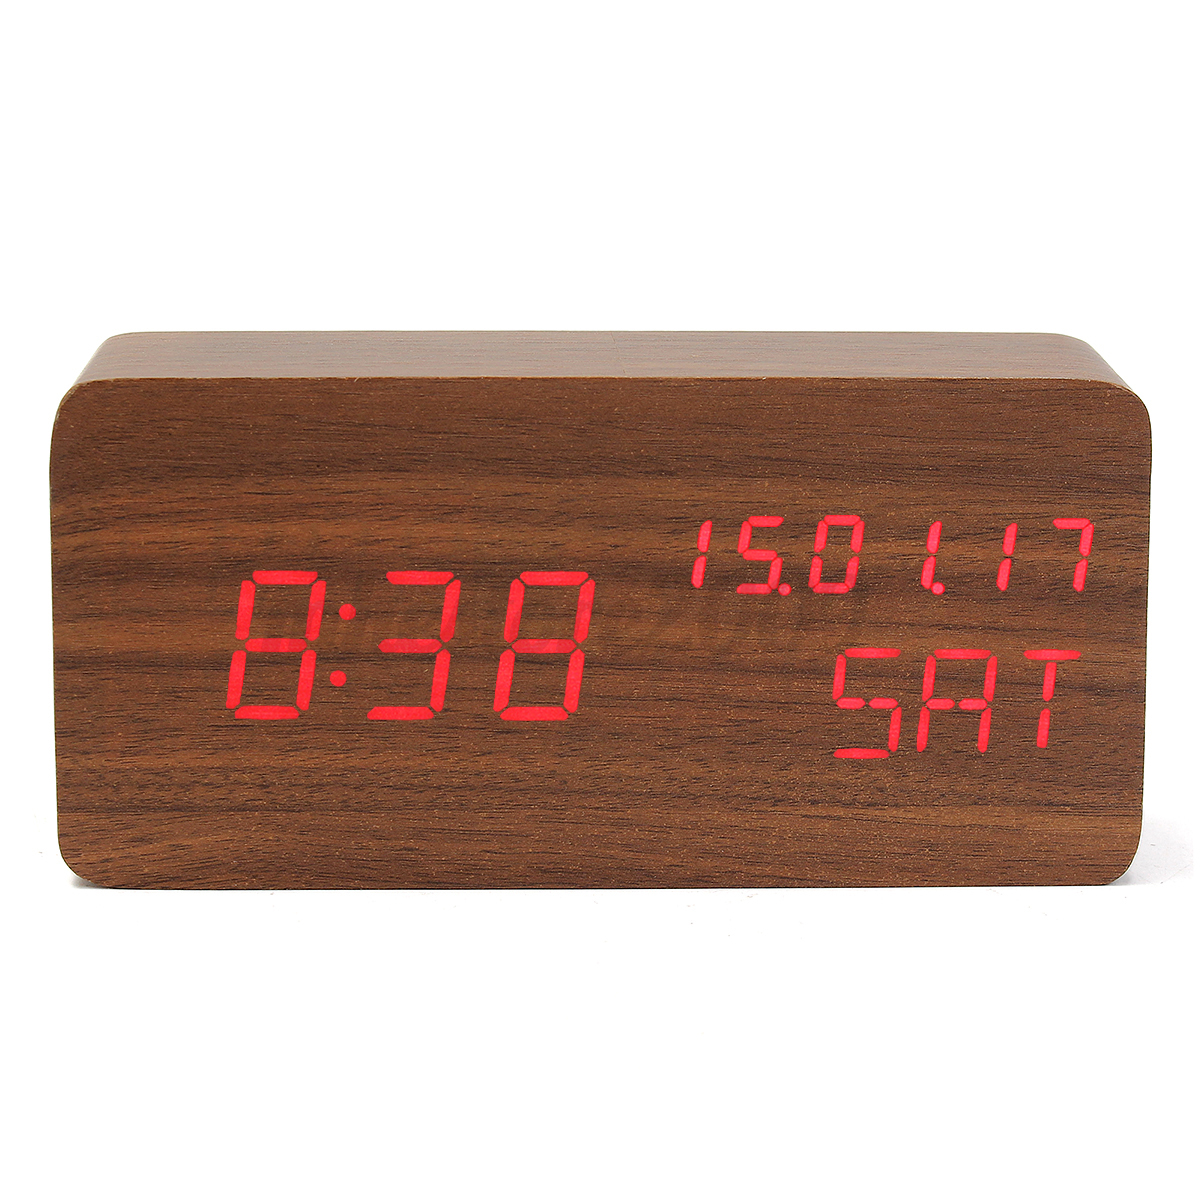 Digital Desk Clock Digital Led Wood Wooden Desk Alarm Clock Timer Thermometer